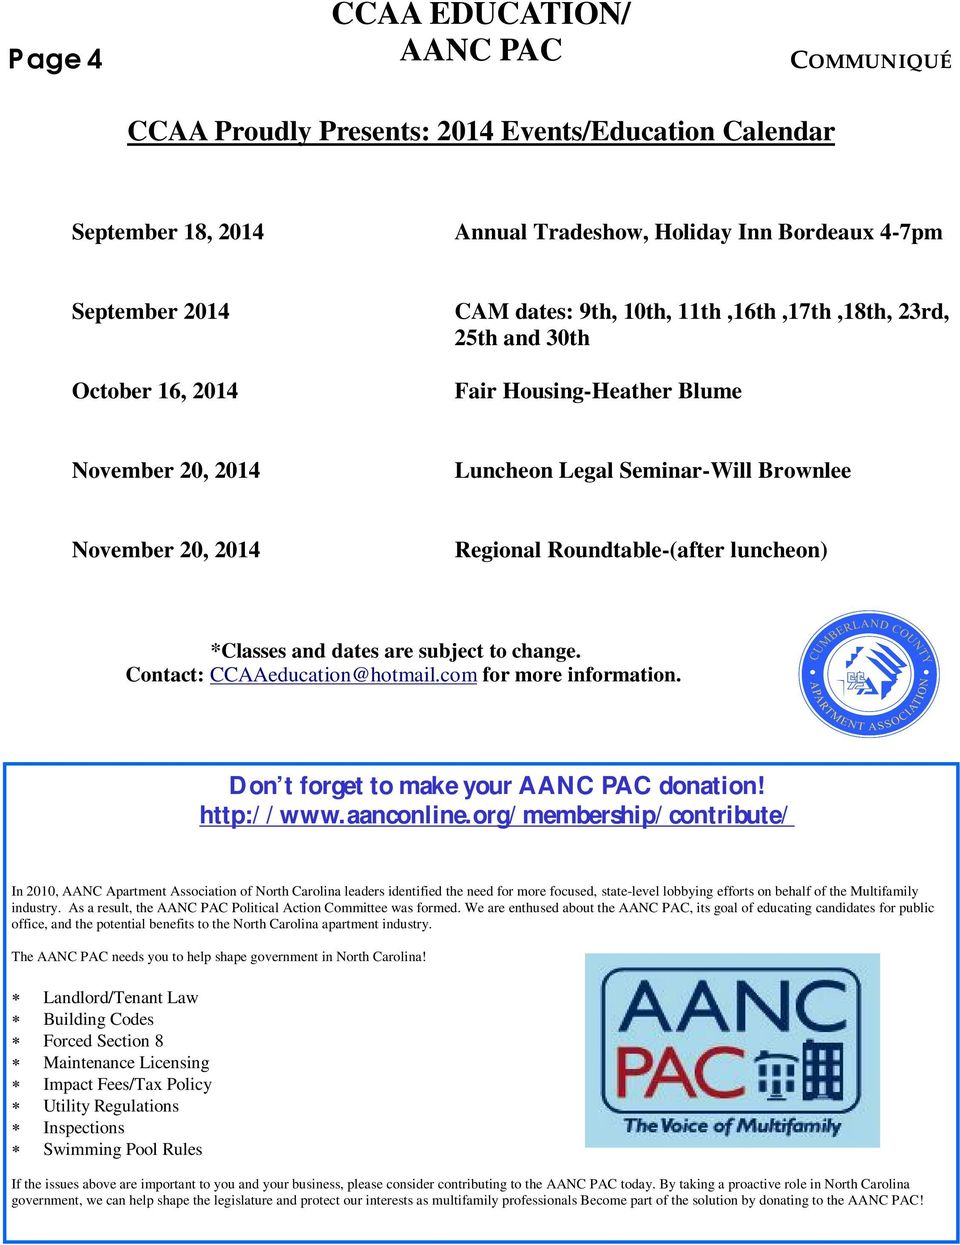 dates are subject to change. Contact: CCAAeducation@hotmail.com for more information. Don t forget to make your AANC PAC donation! http://www.aanconline.